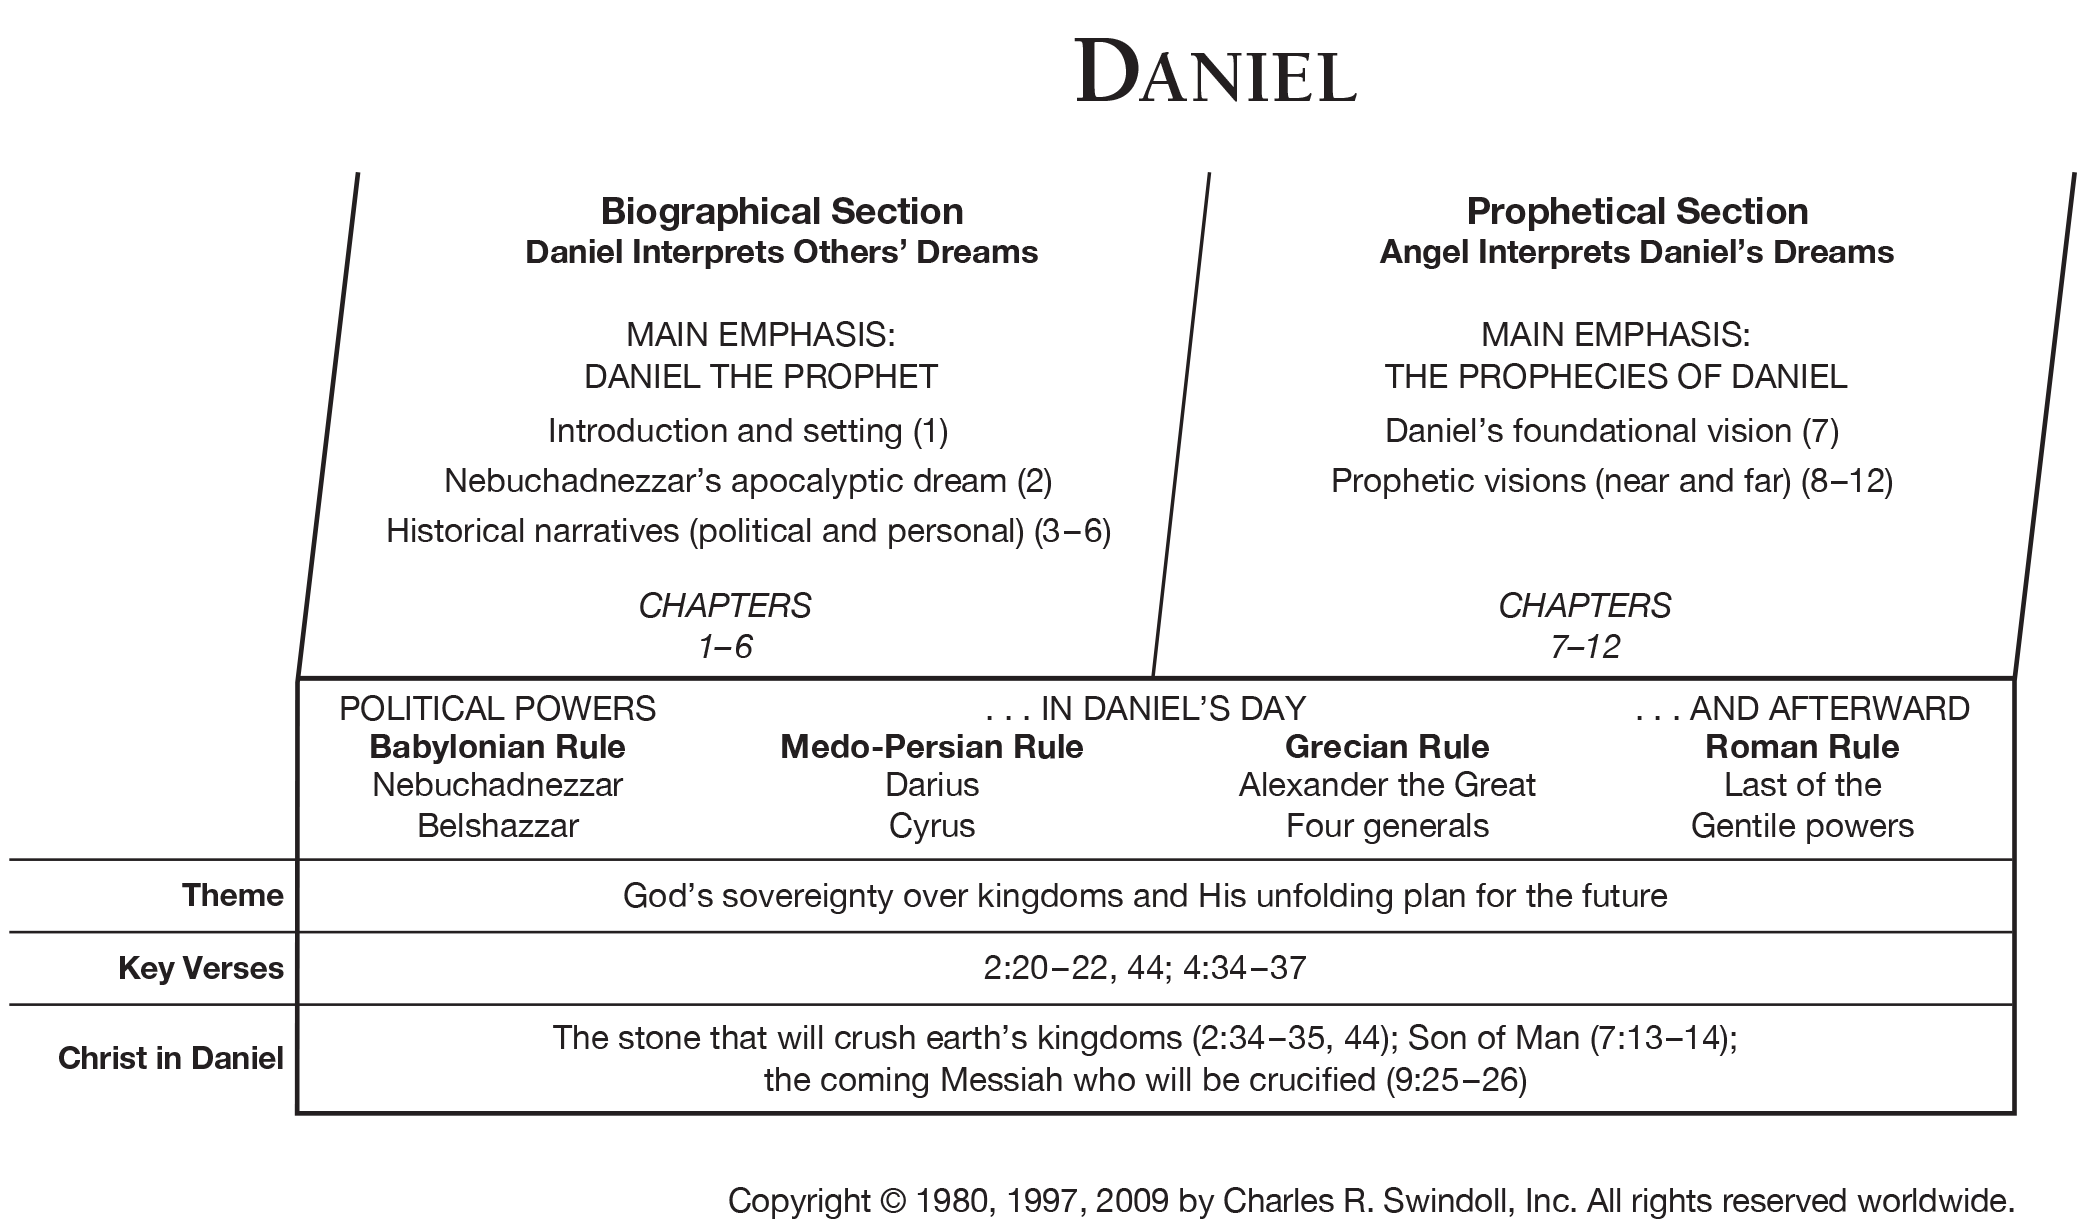 Book Of Daniel Overview